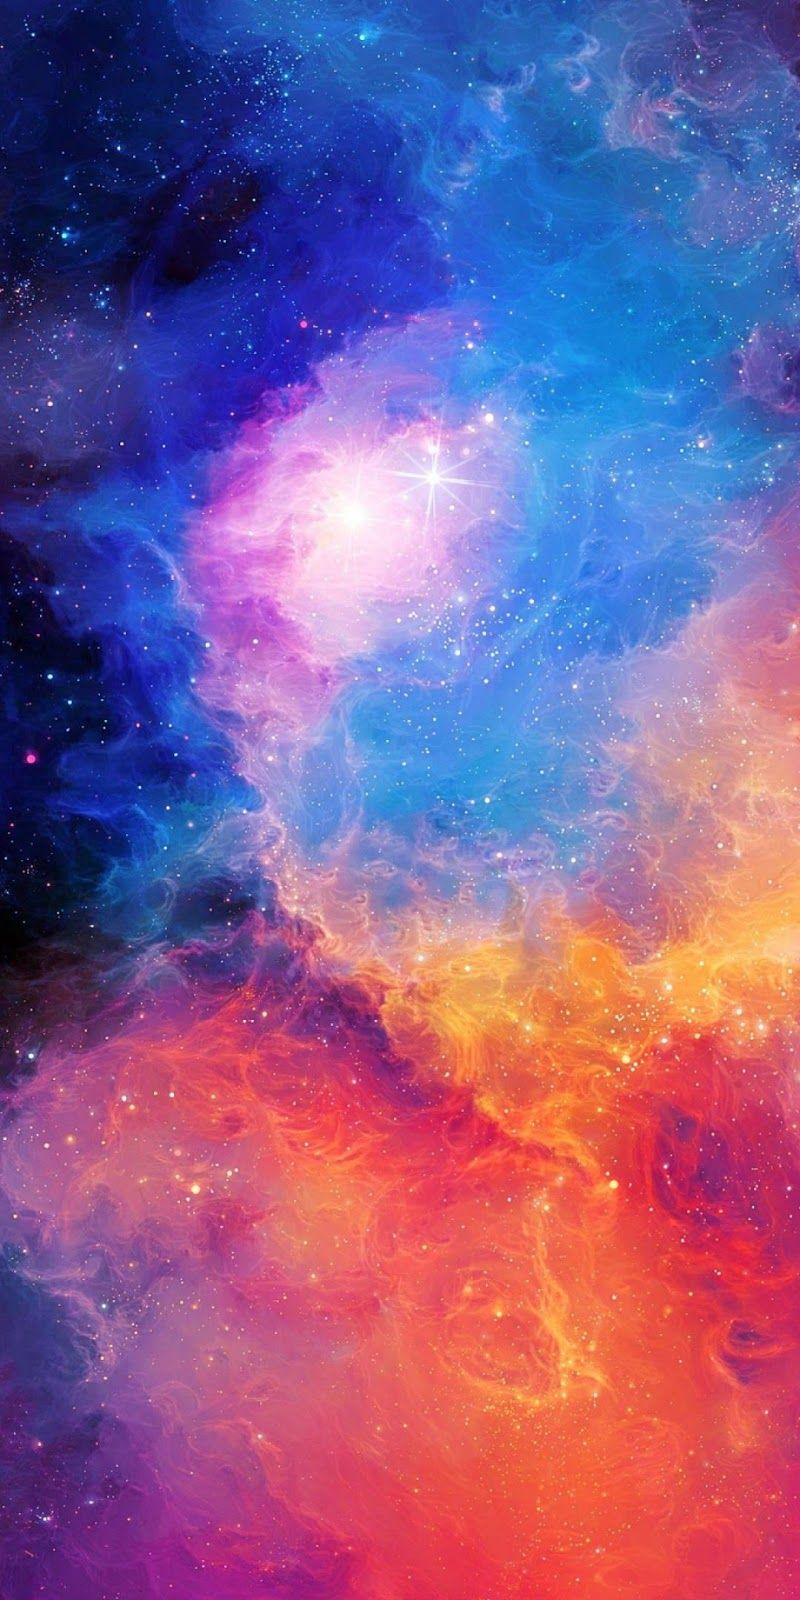 Colorful space Samsung wallpaper, Galaxy wallpaper